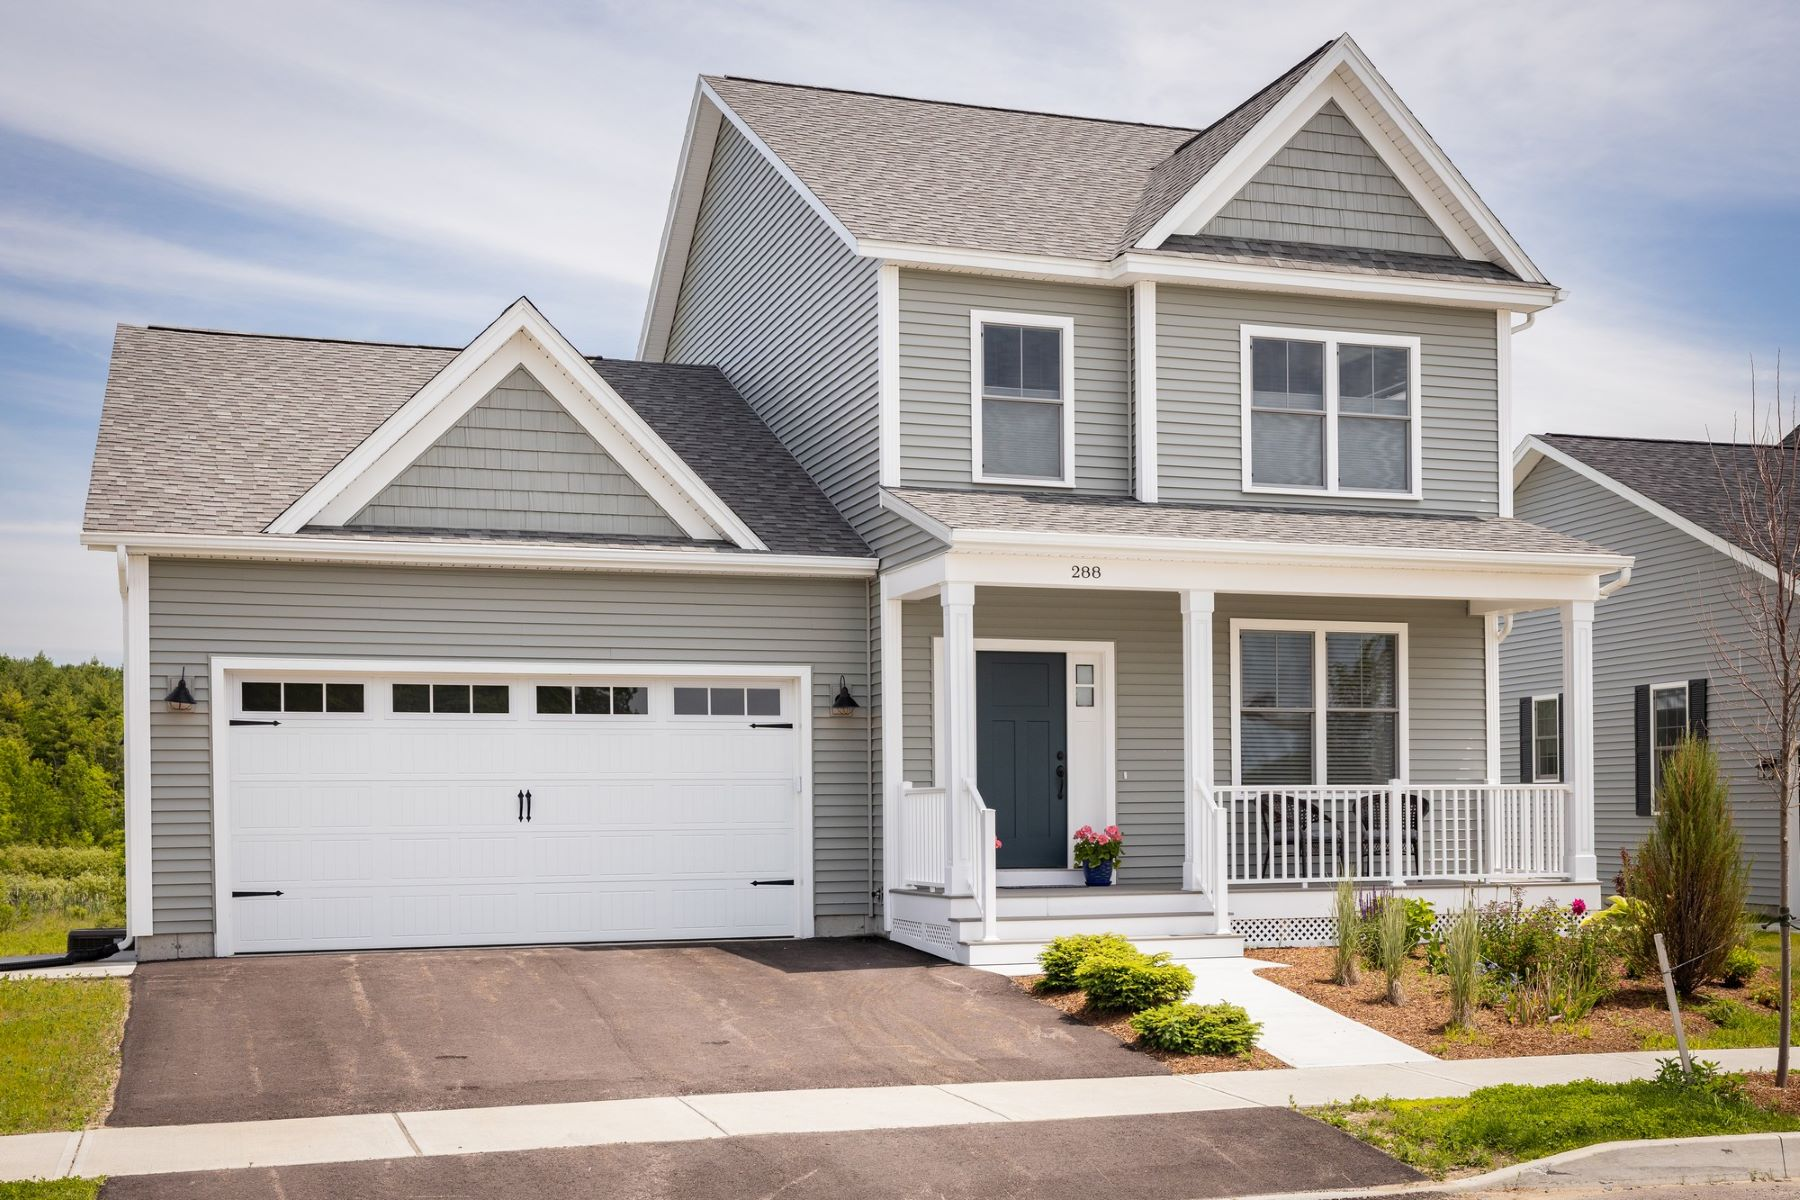 Condominiums for Sale at 288 North Jefferson Street, South Burlington 288 North Jefferson St South Burlington, Vermont 05403 United States